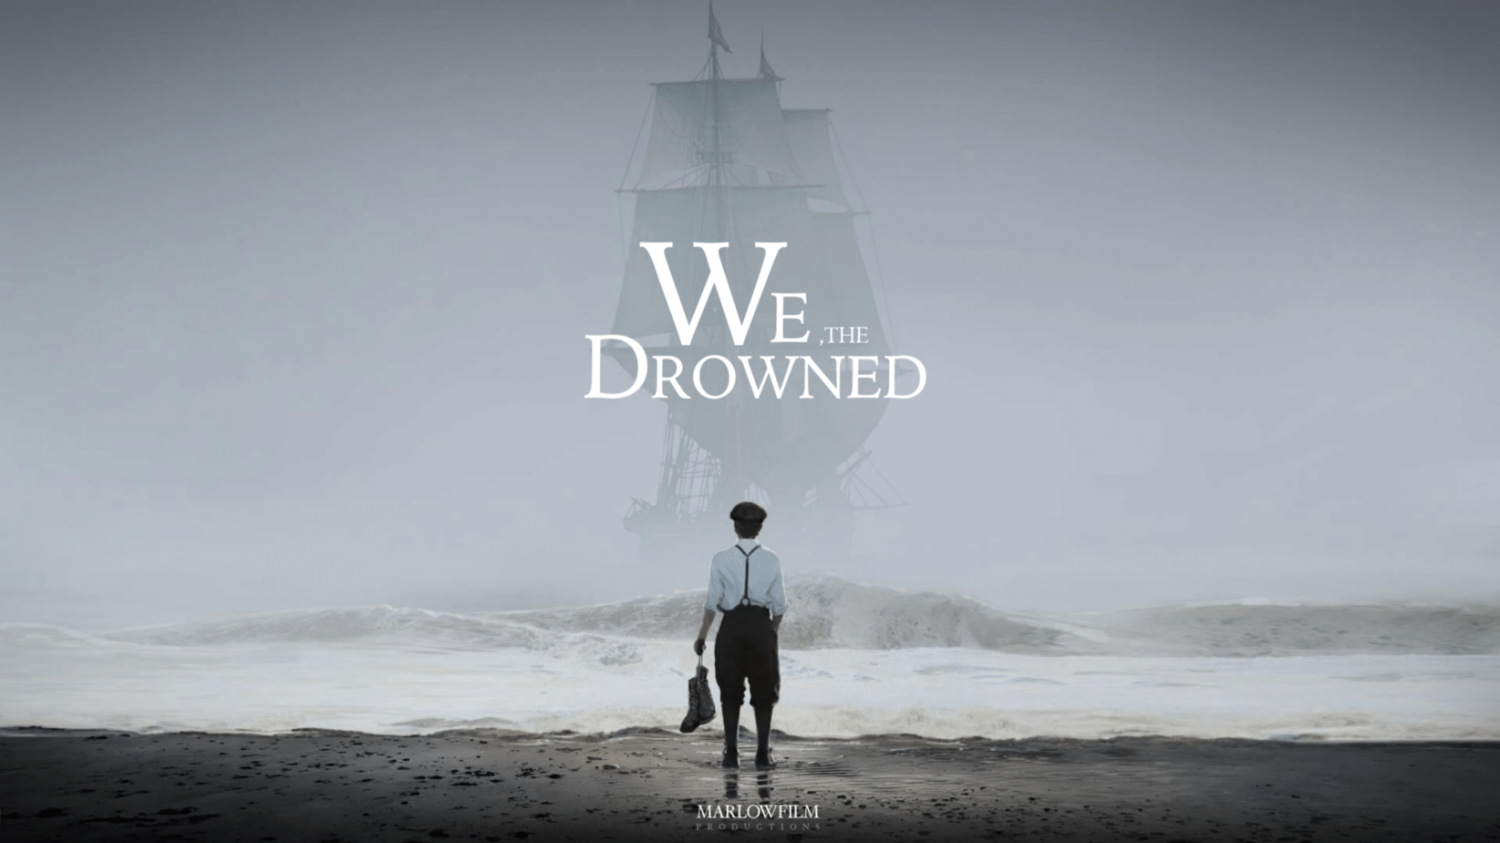 Marlowfilm Productions / We, the Drowned